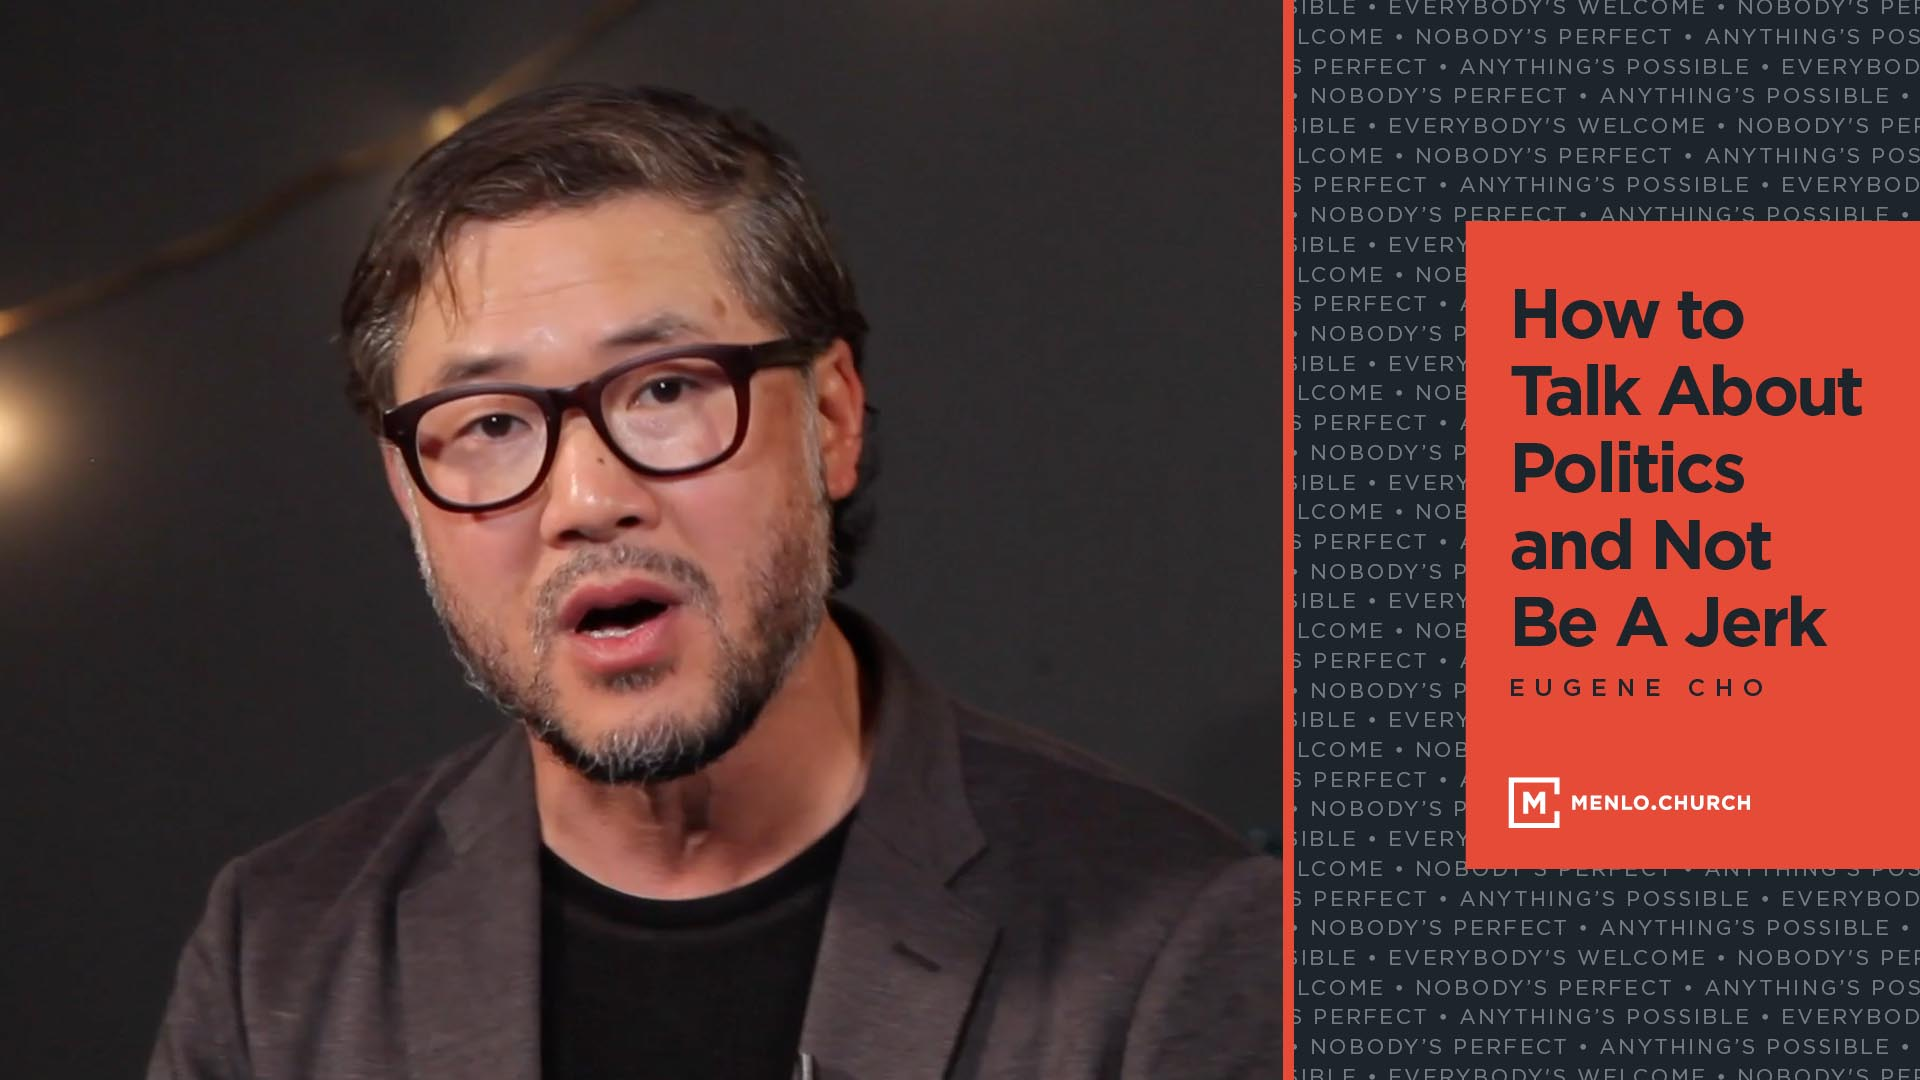 How to Talk About Politics and Not Be A Jerk   Eugene Cho